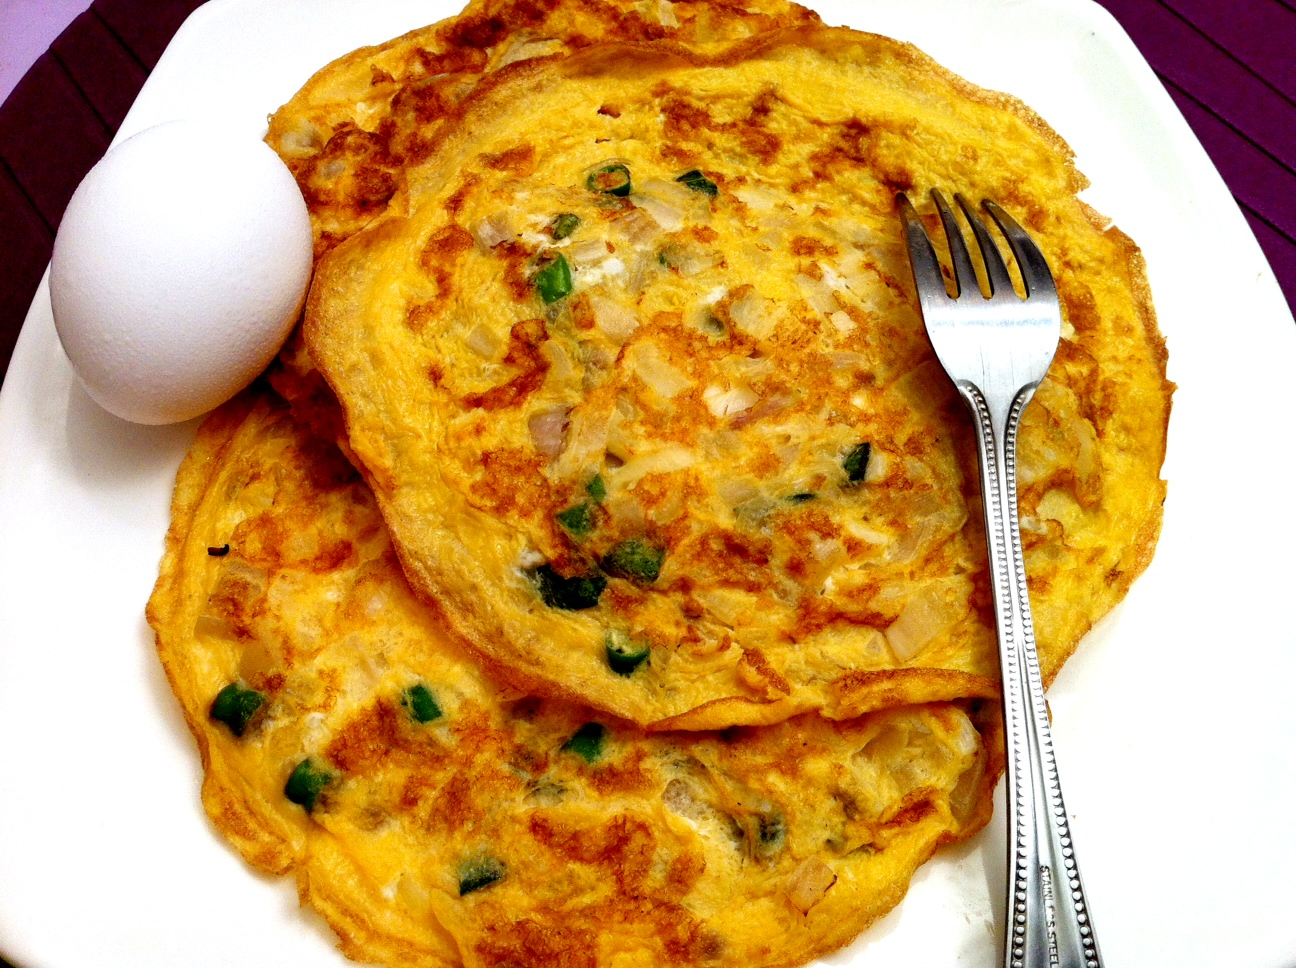 ... omelette eat masala omelette placed sandi indian omelet indian omelet